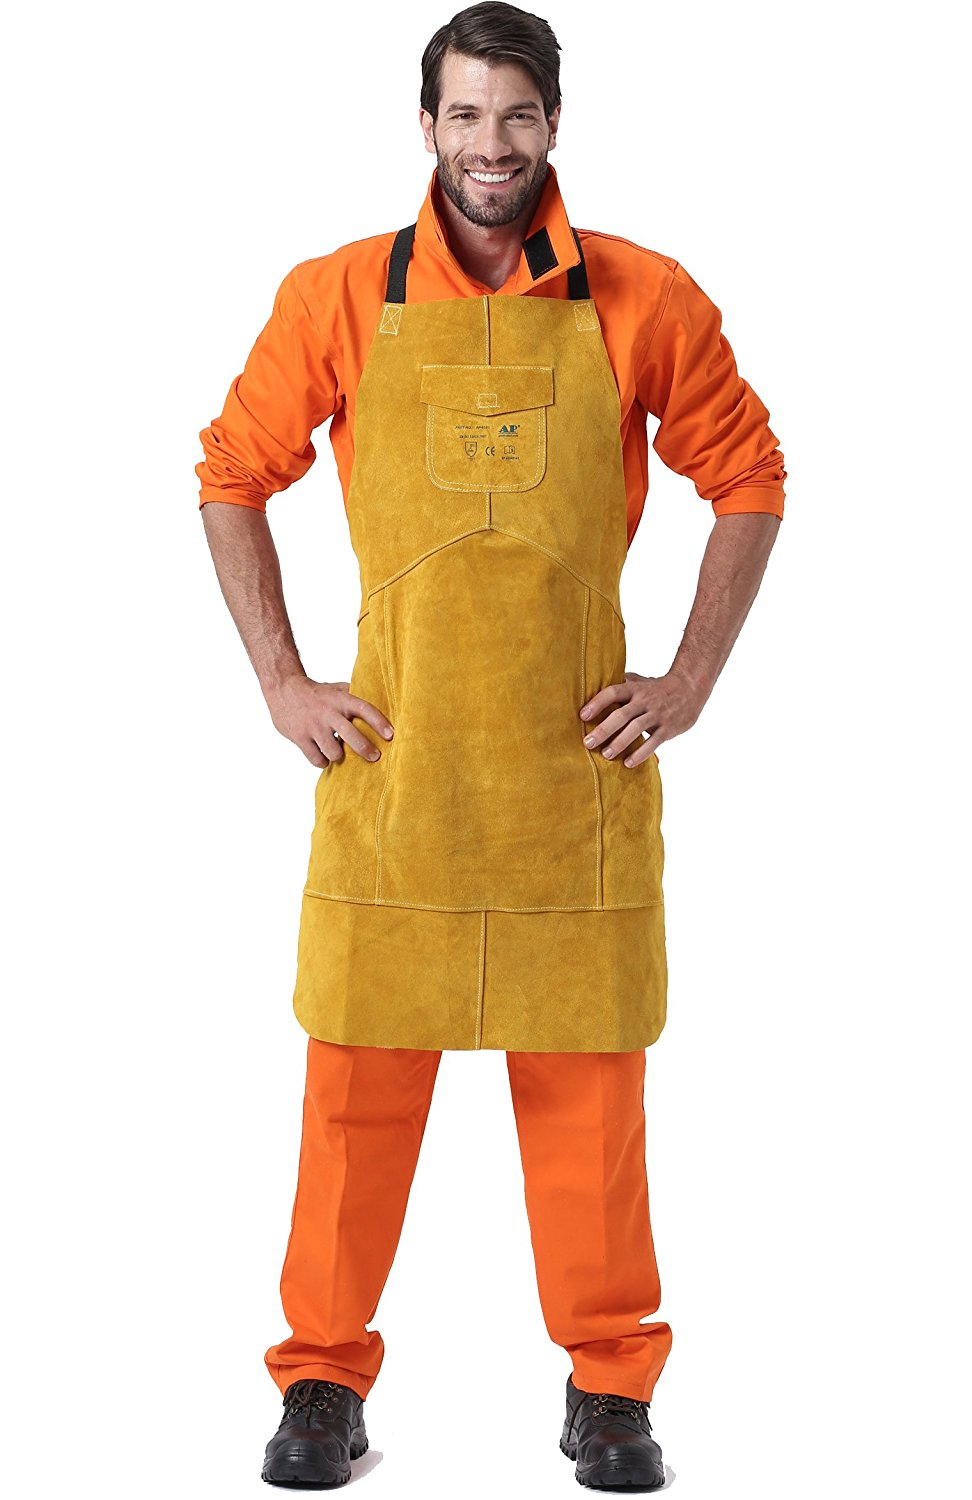 Professional Leather Welding Apron Welder Protect Clothing Carpenter Blacksmith Garden Cowhide Clothing Leather Working Apron